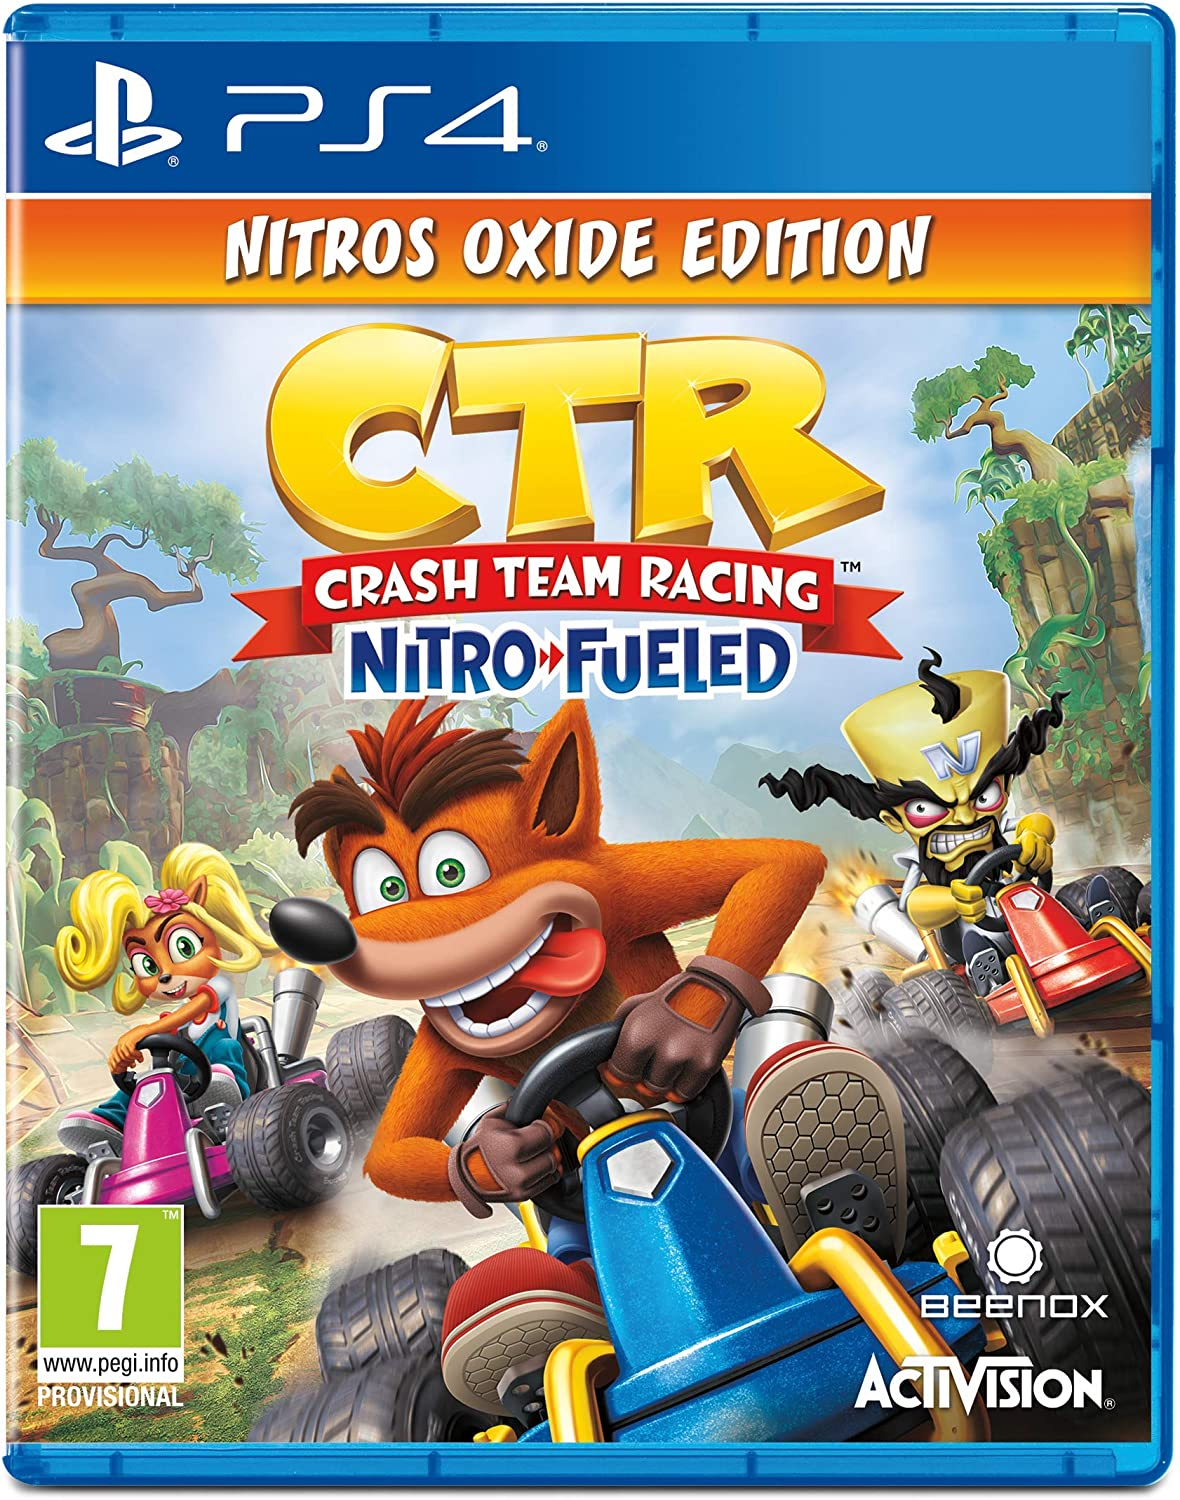 d07f34fd3 Crash Team Racing Nitro-Fueled - Nitros Oxide Edition (PS4): Amazon.co.uk:  PC & Video Games